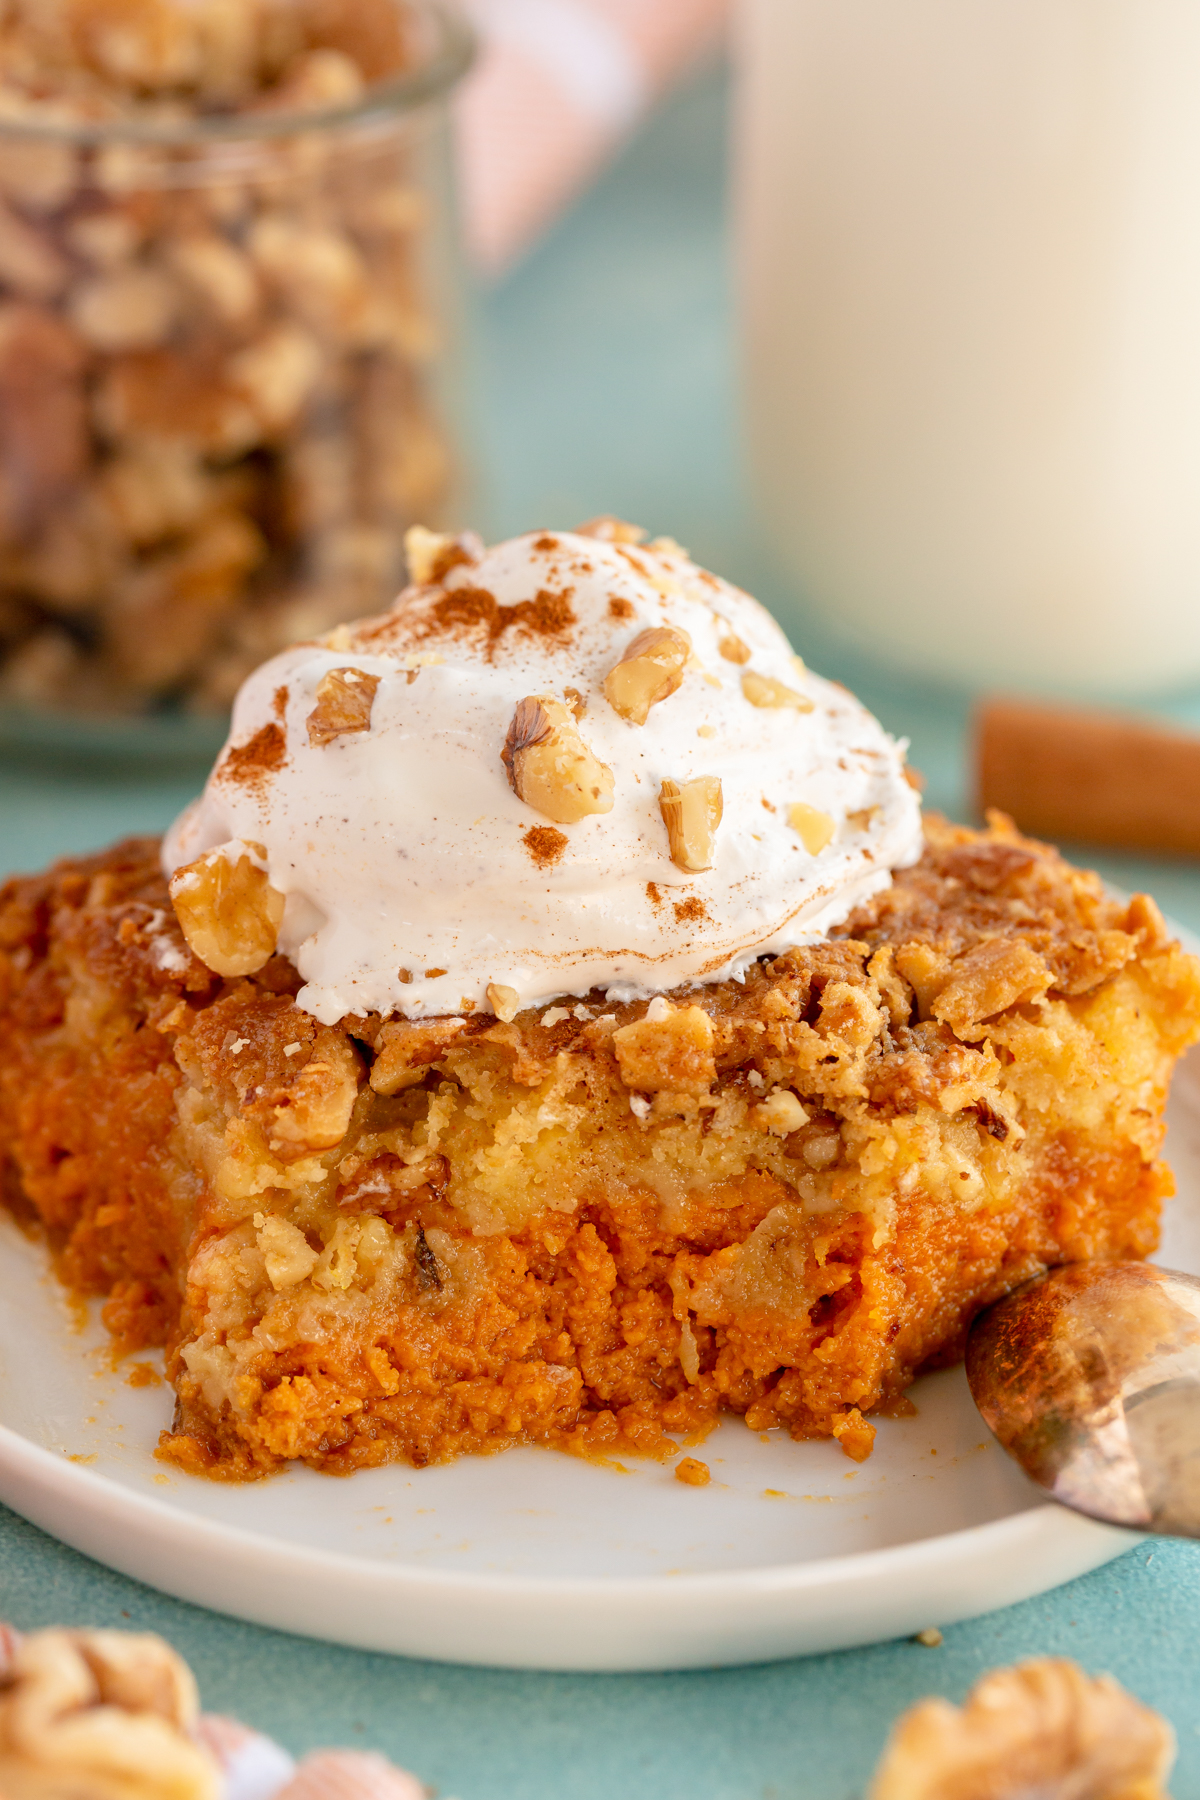 piece of pumpkin crunch cake with whipped cream on top